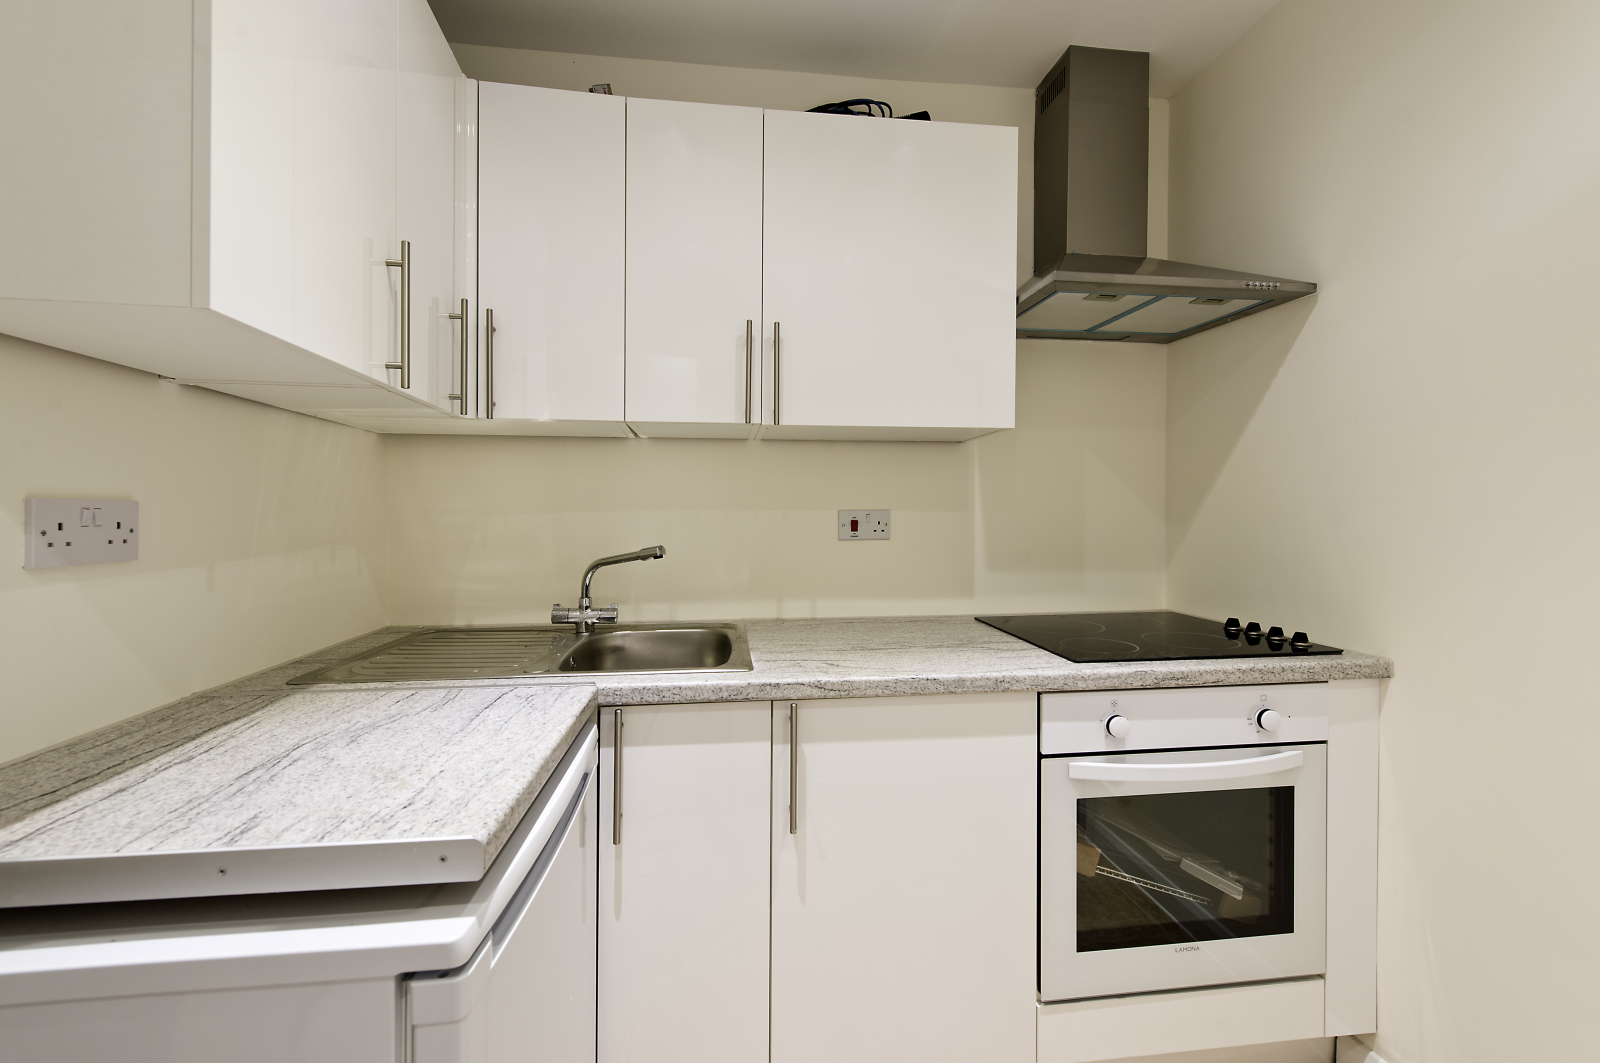 1 bed house share to rent in Charleville road, West Kensington, London 8